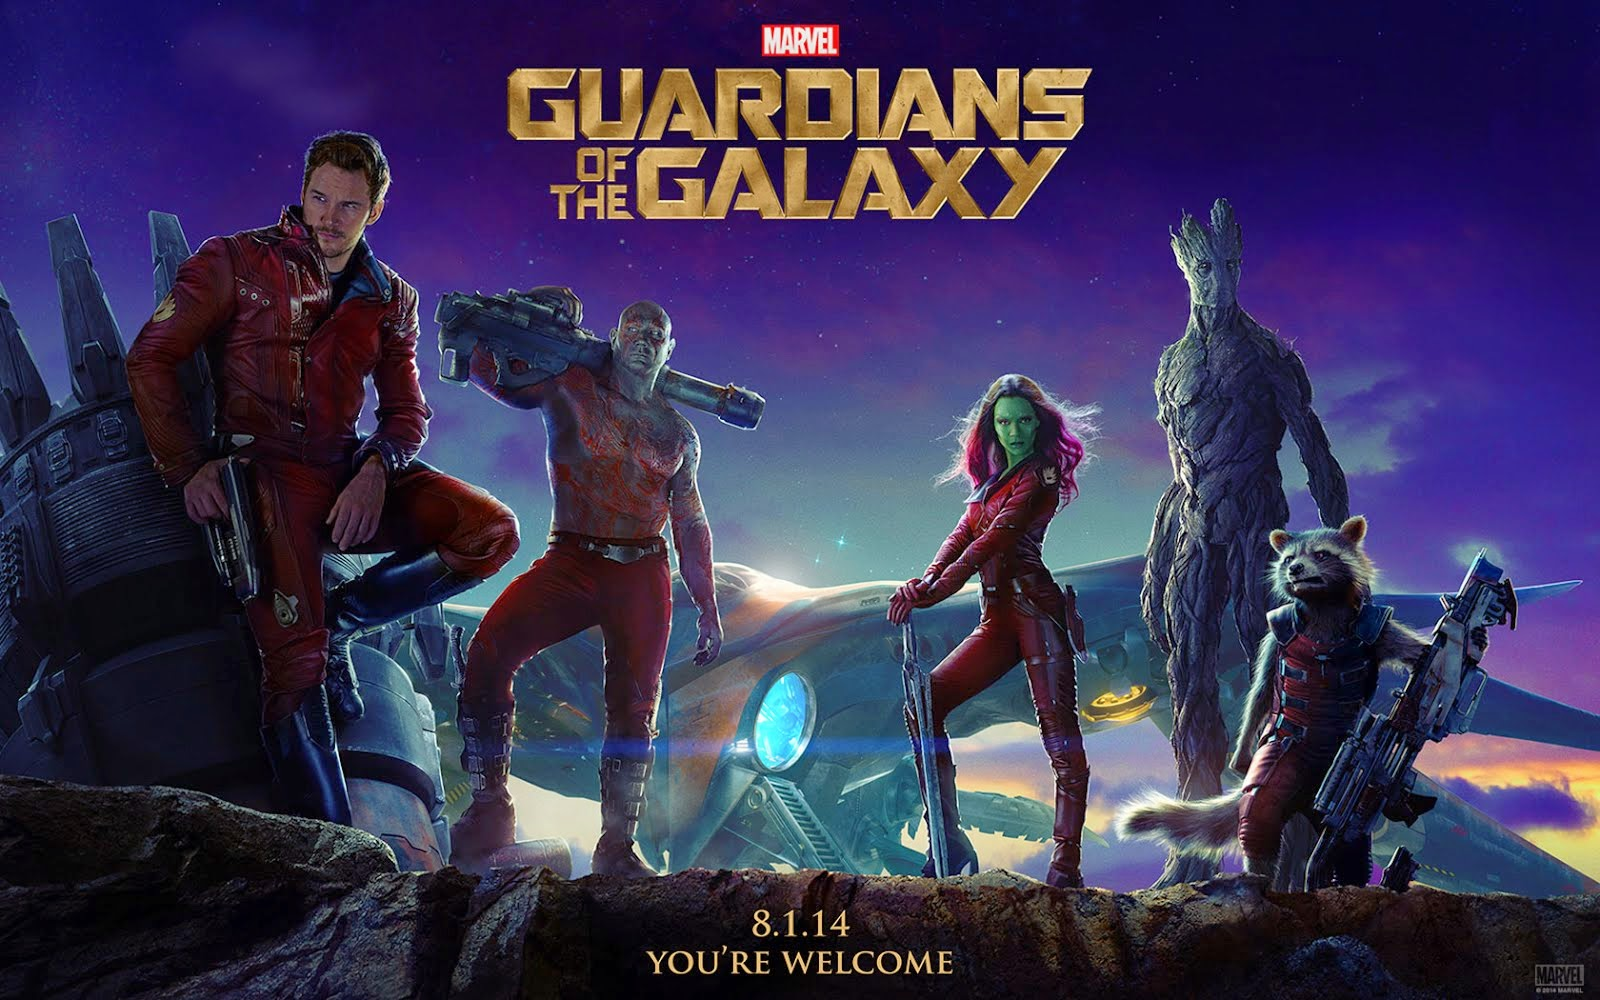 GUARDIANS OF THE GALAXY!!!